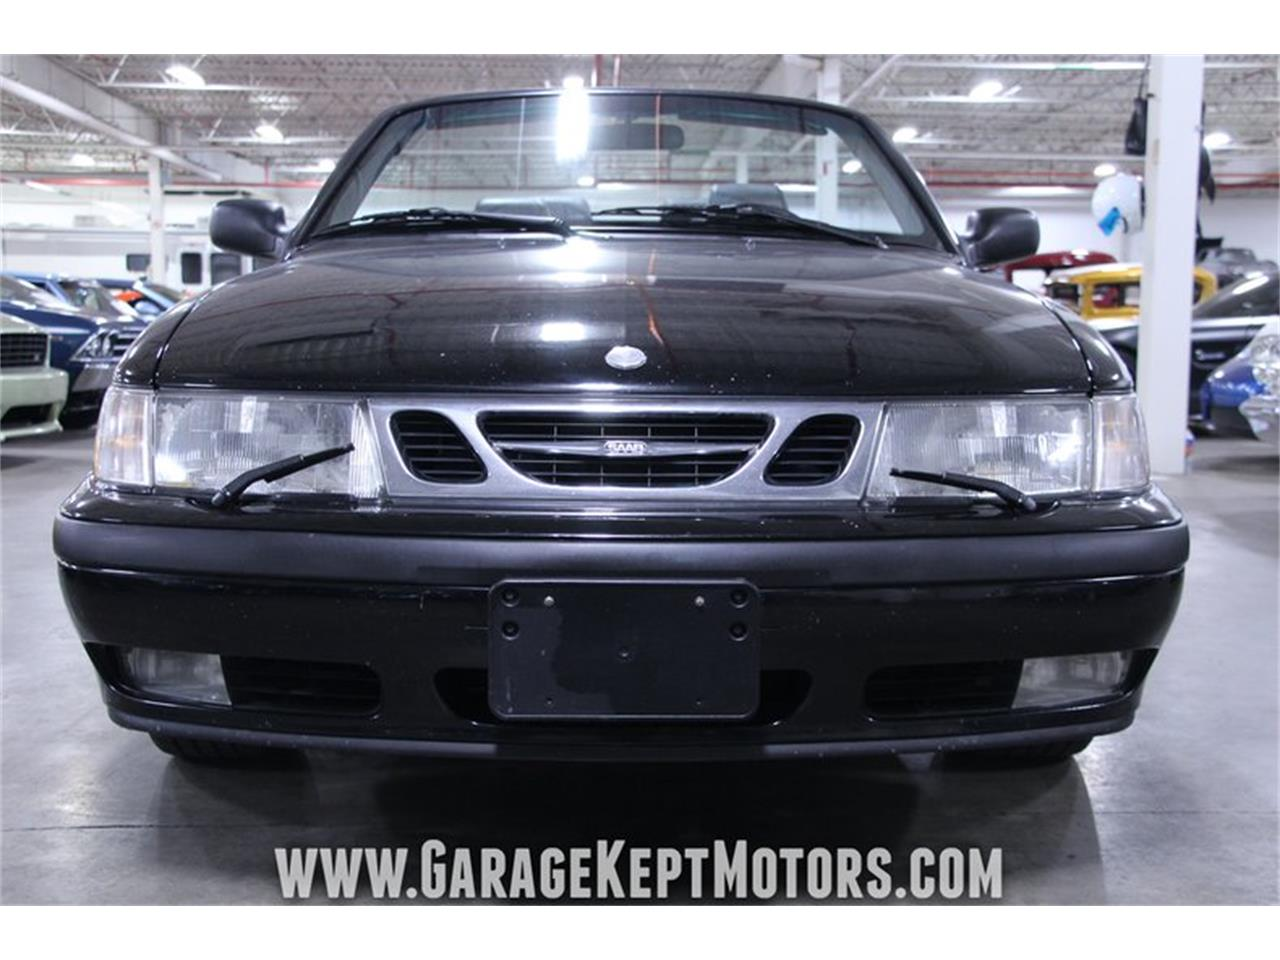 1999 Saab 9-3 for sale in Grand Rapids, MI – photo 76